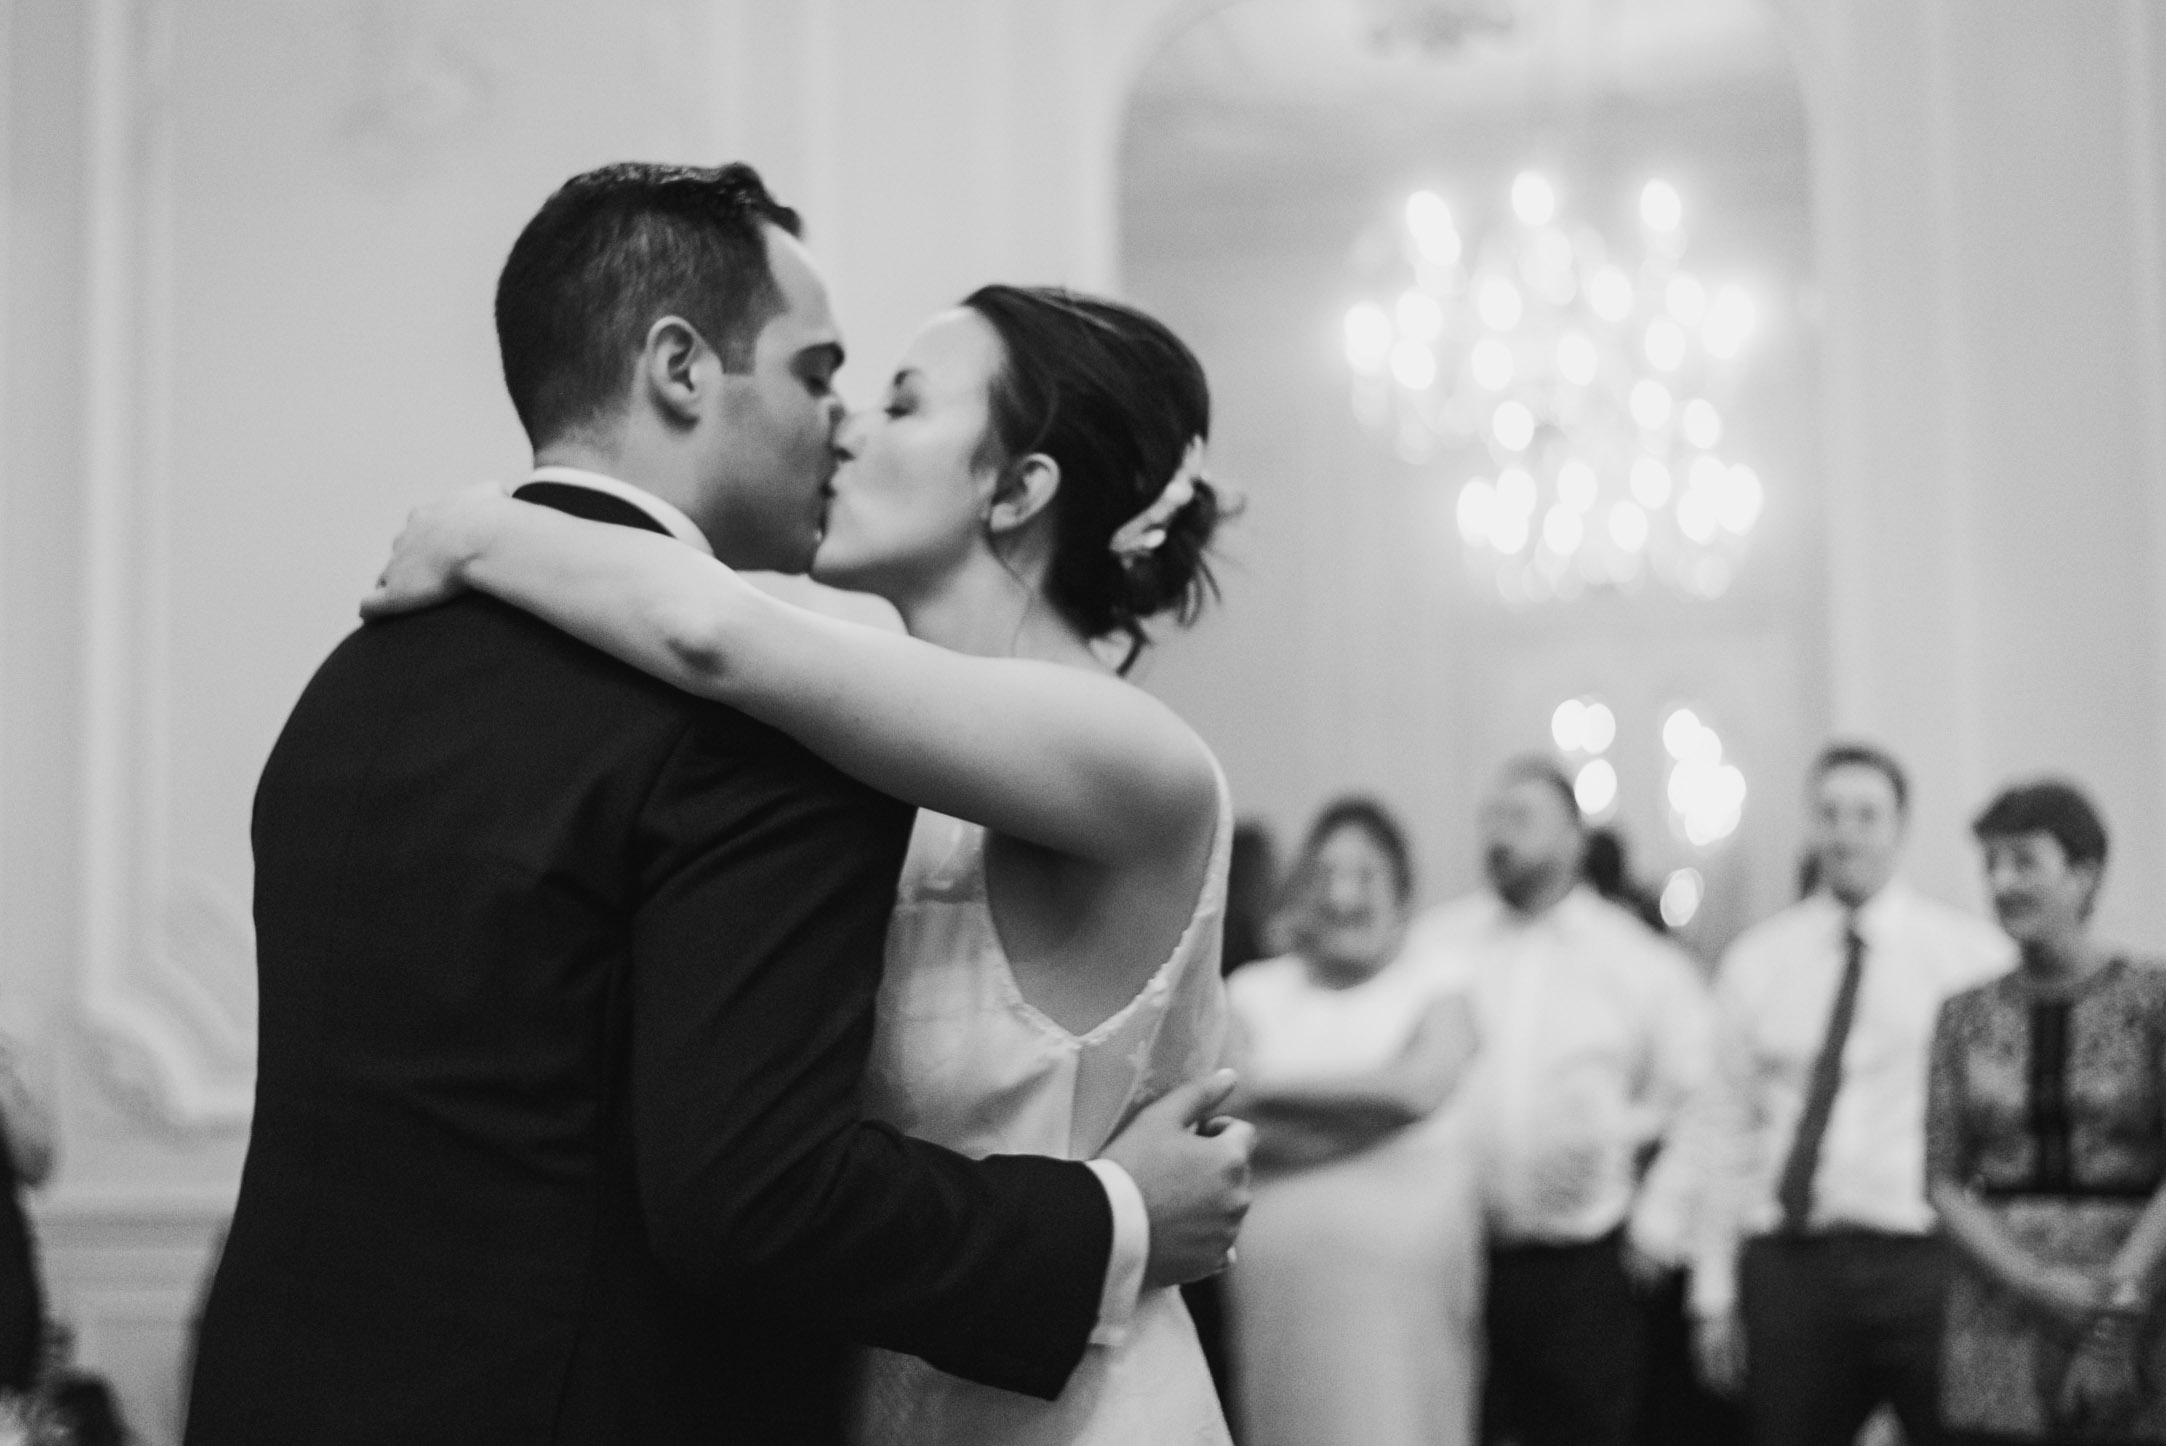 carine bea photography, guestsfirst dance wedding Carlton House Terrace London